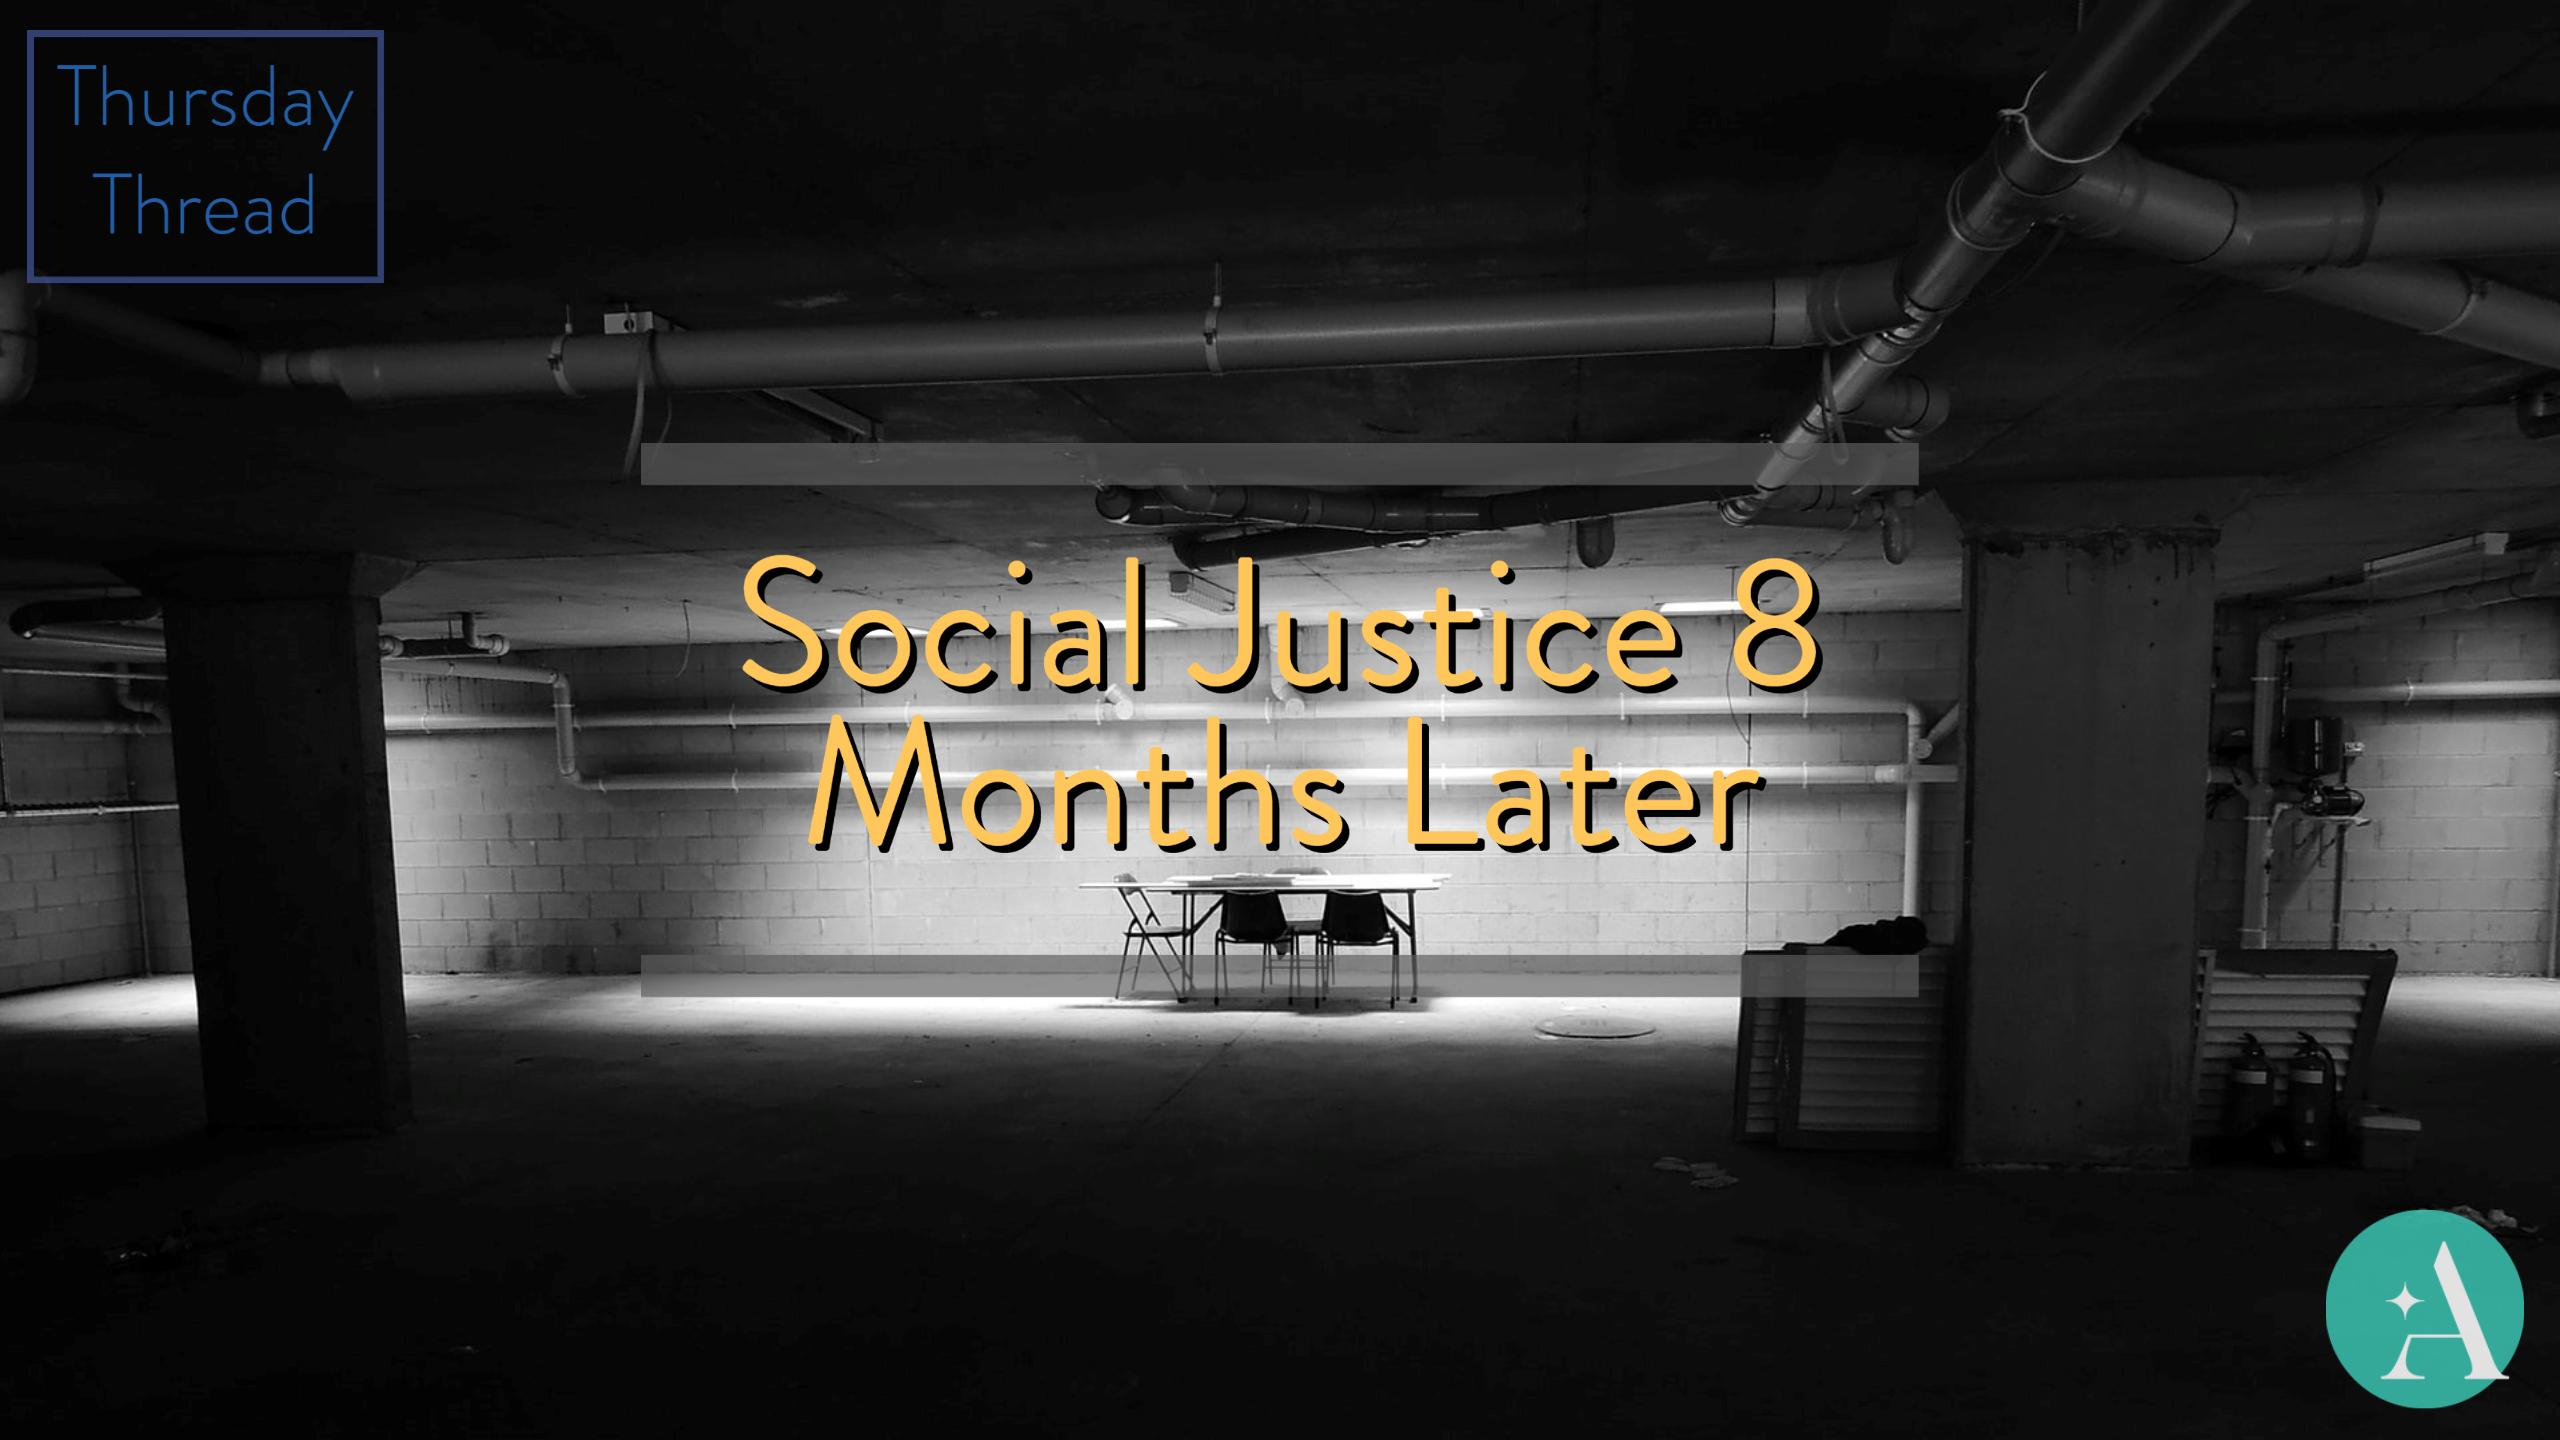 Thursday Thread: Social Justice 8 Months Later Thumbnail